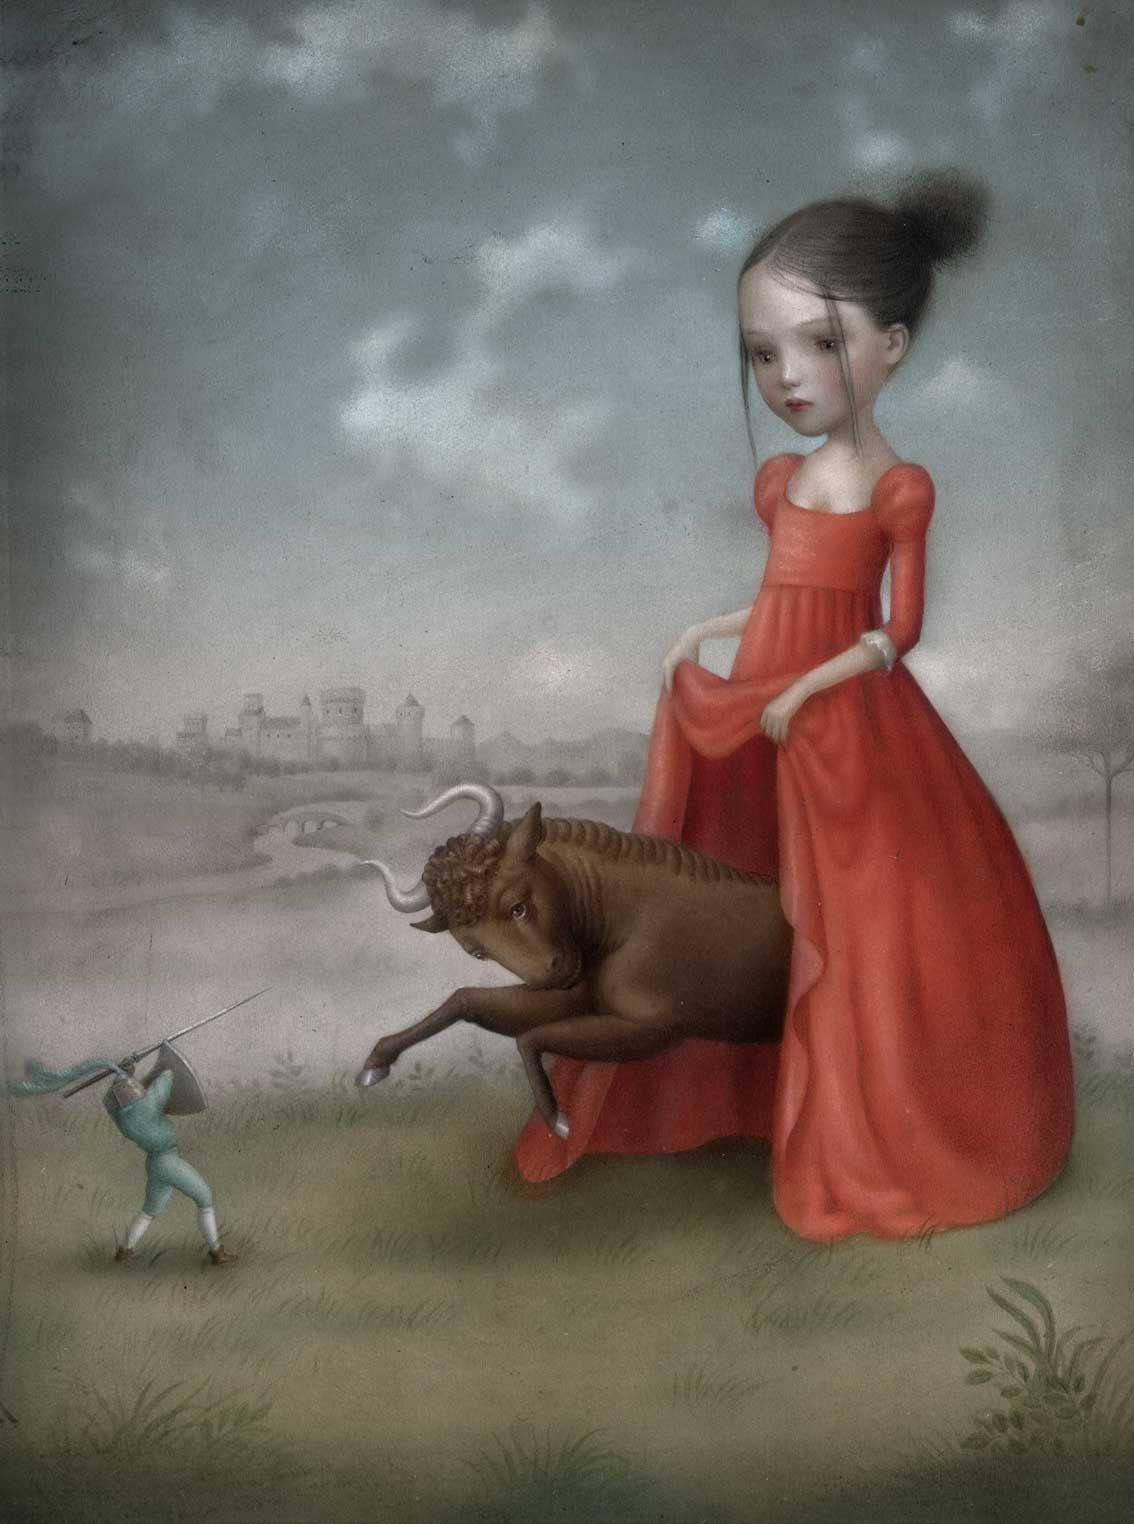 """""""Release"""" by Nicoletta Ceccoli // #nicolettaceccoli #nicoletta #ceccoli (the power her 'little girl' sheroes have, is so interesting. A cool message for little girls and big women alike. oh, and for guys -- cuz i'm sure many have never imagined a bull charging from under a red ballgown. haha"""